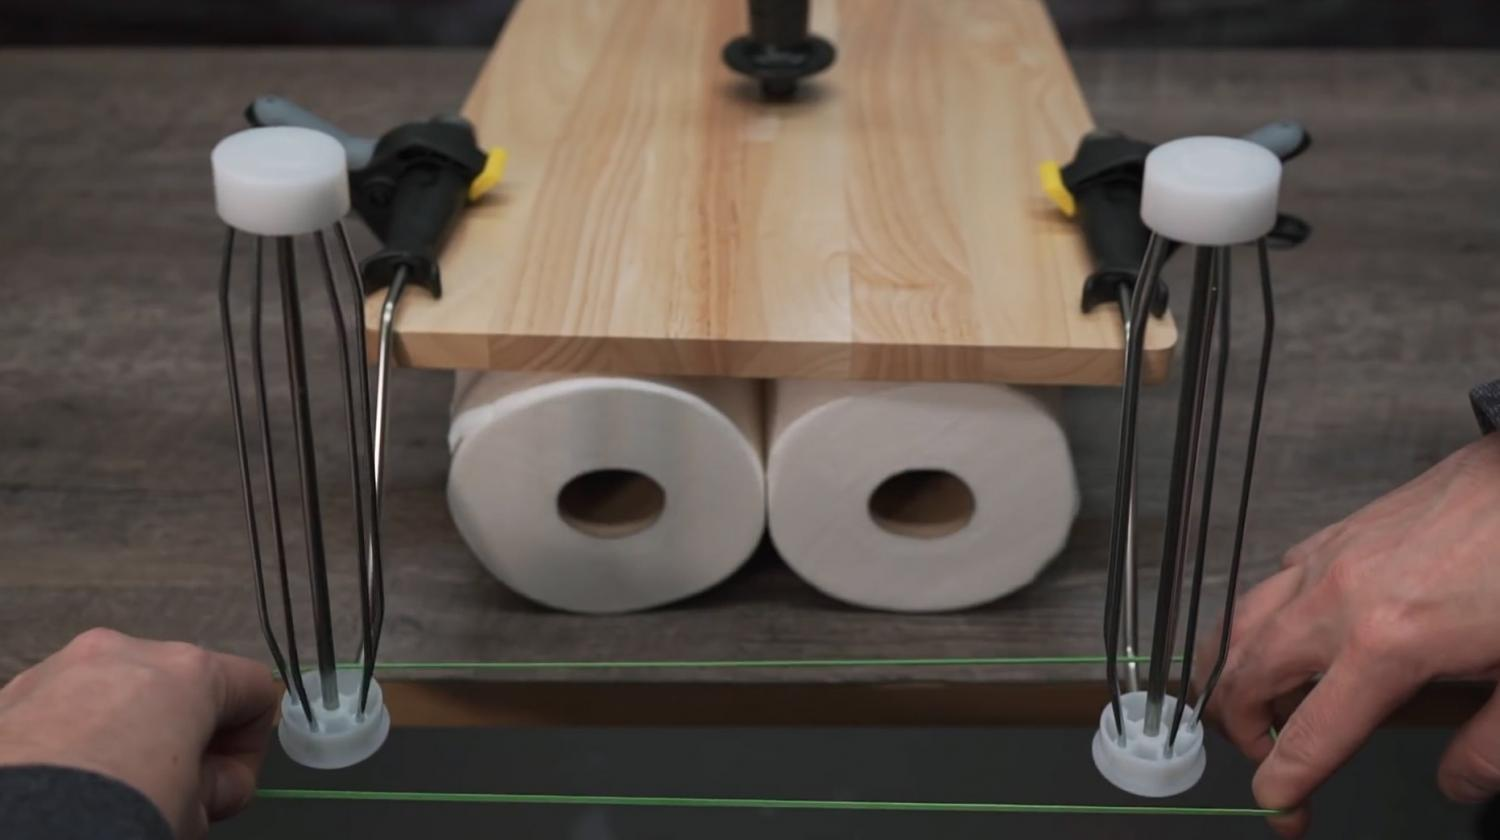 Toilet Paper-Splitter Machine That Turns Your 2-Ply Toilet Paper Into Two Rolls